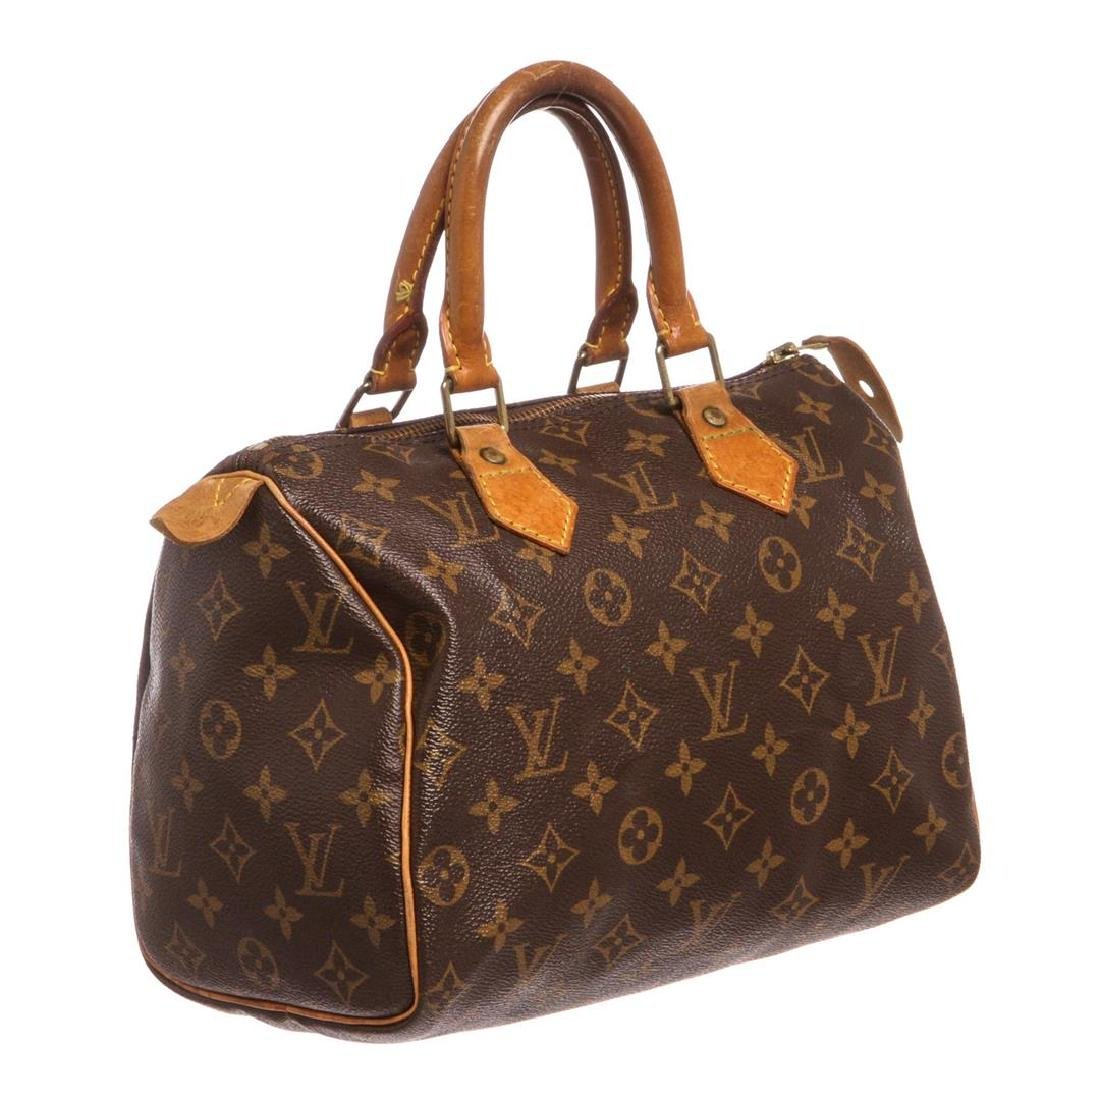 Louis Vuitton Monogram Canvas Leather Speedy 25 cm Bag - 2